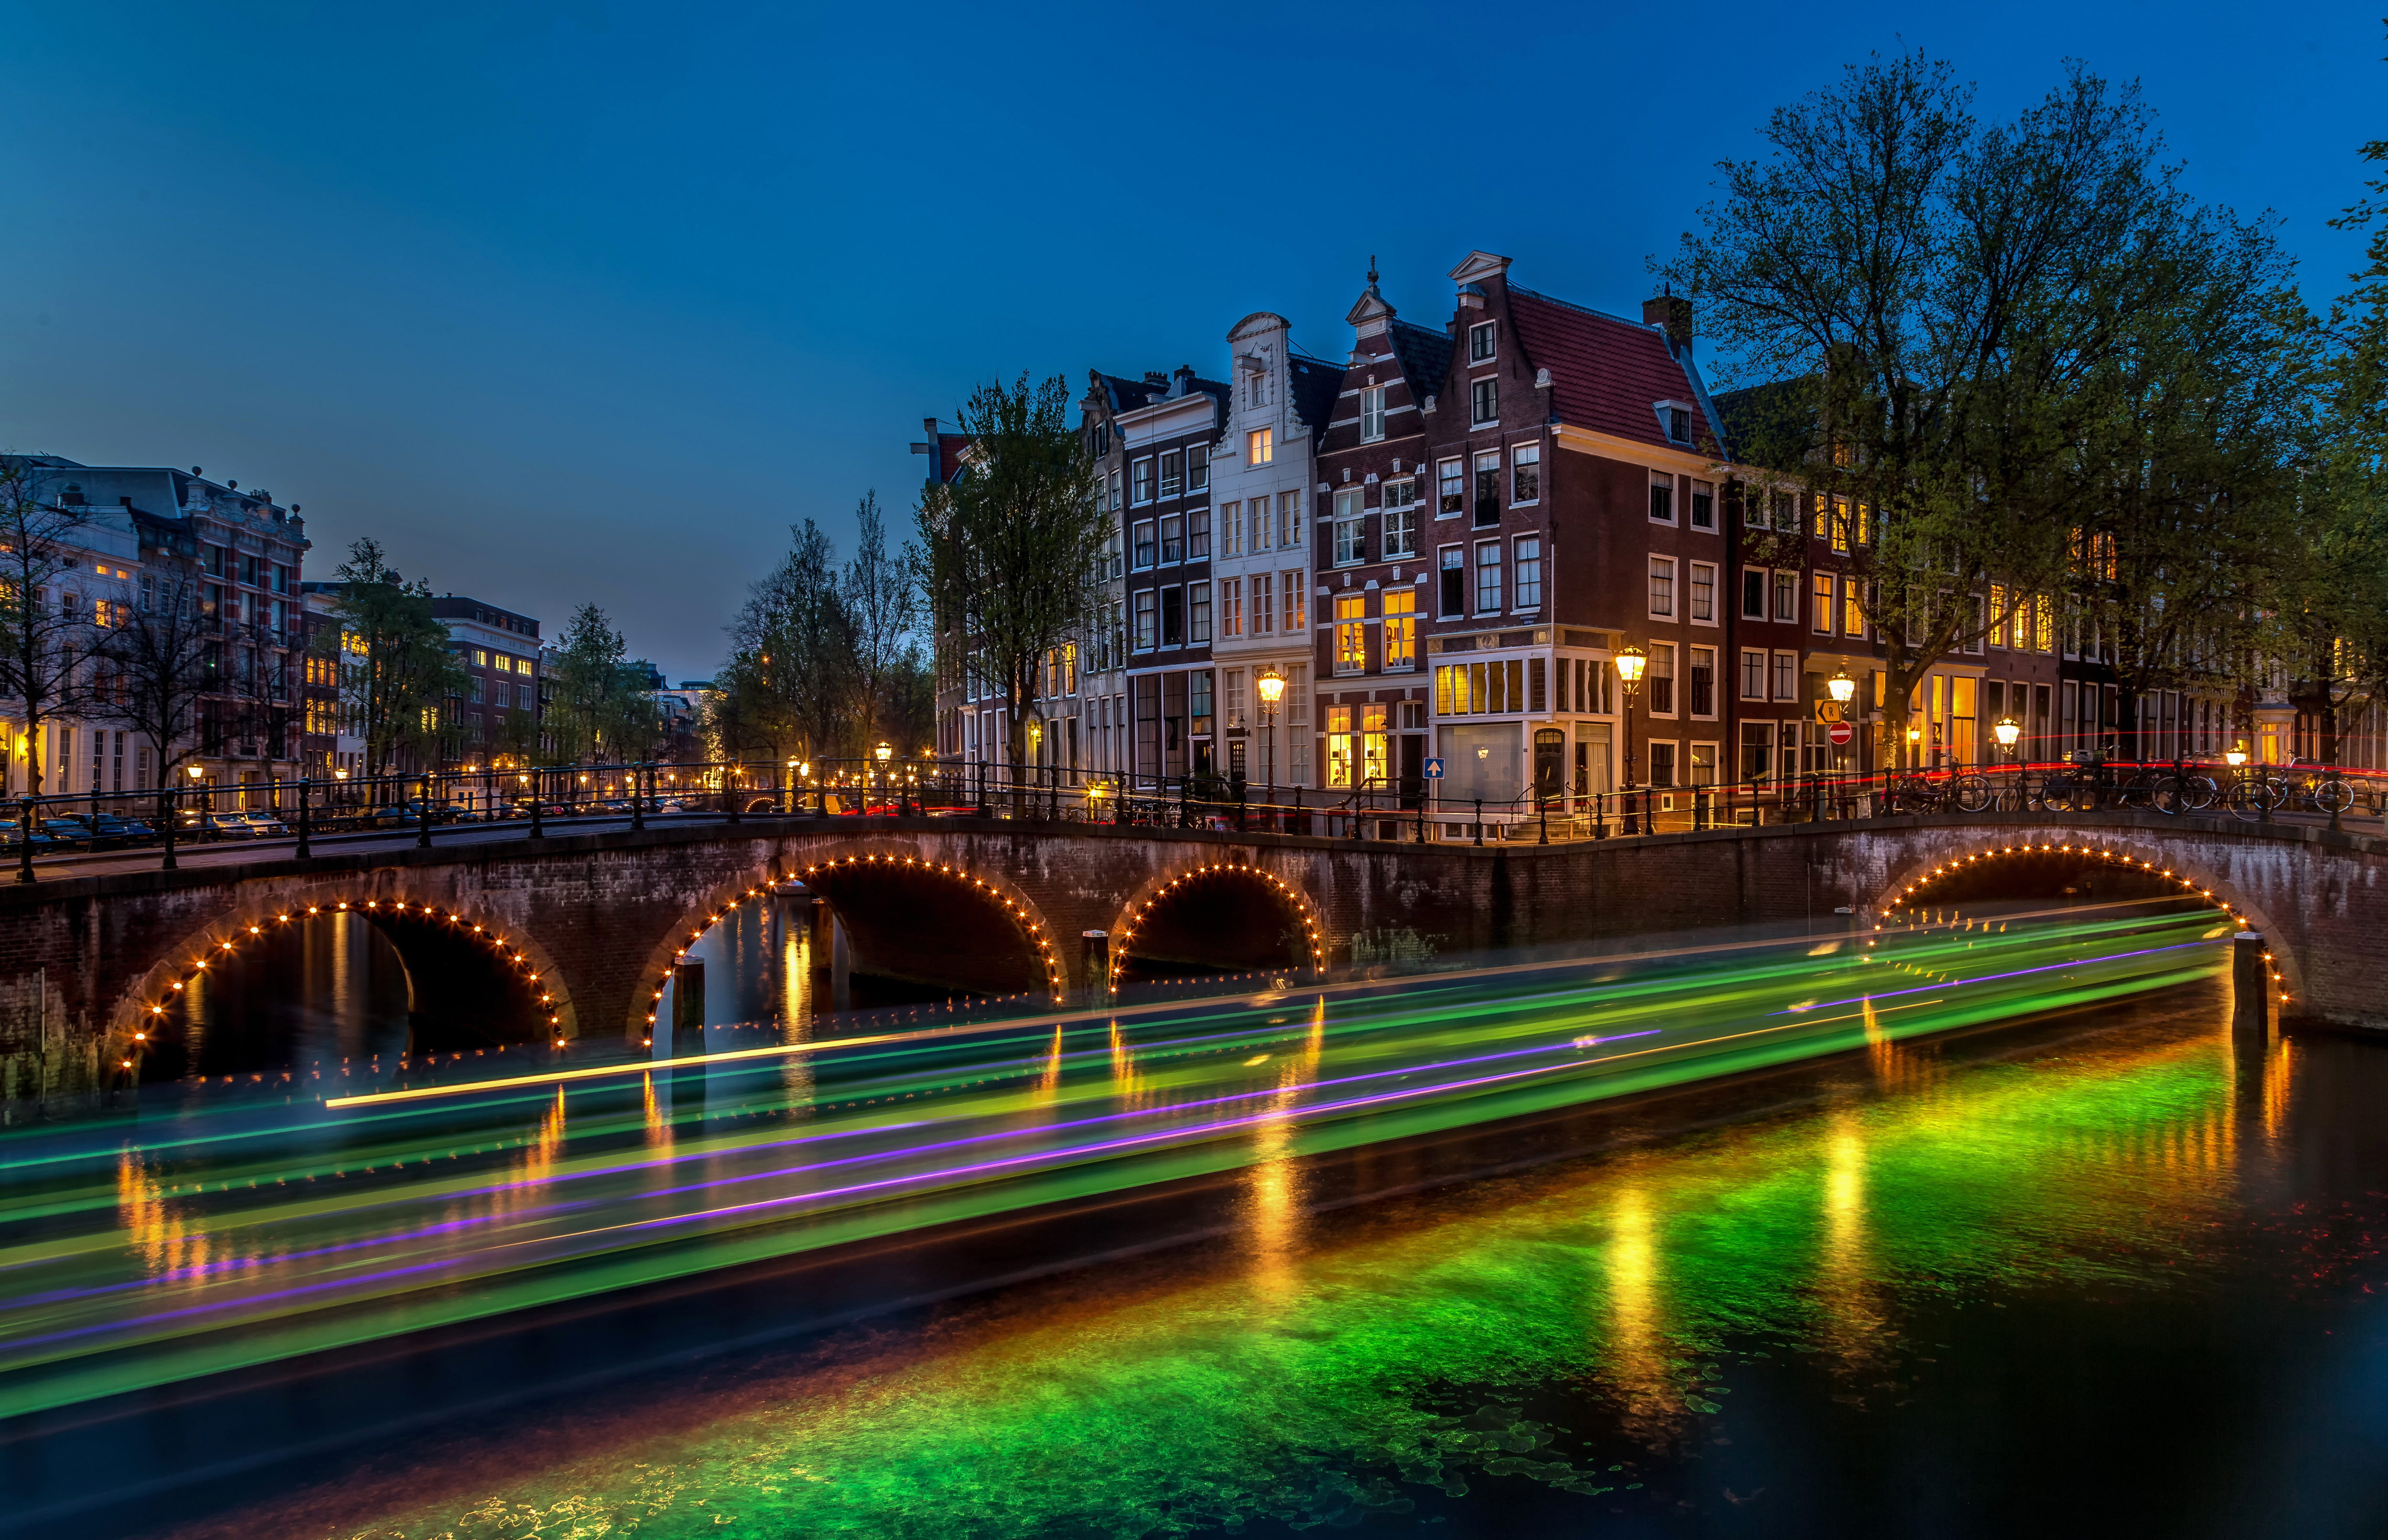 4k Hdr Wallpaper Iphone X Amsterdam 4k Ultra Hd Wallpaper And Background Image